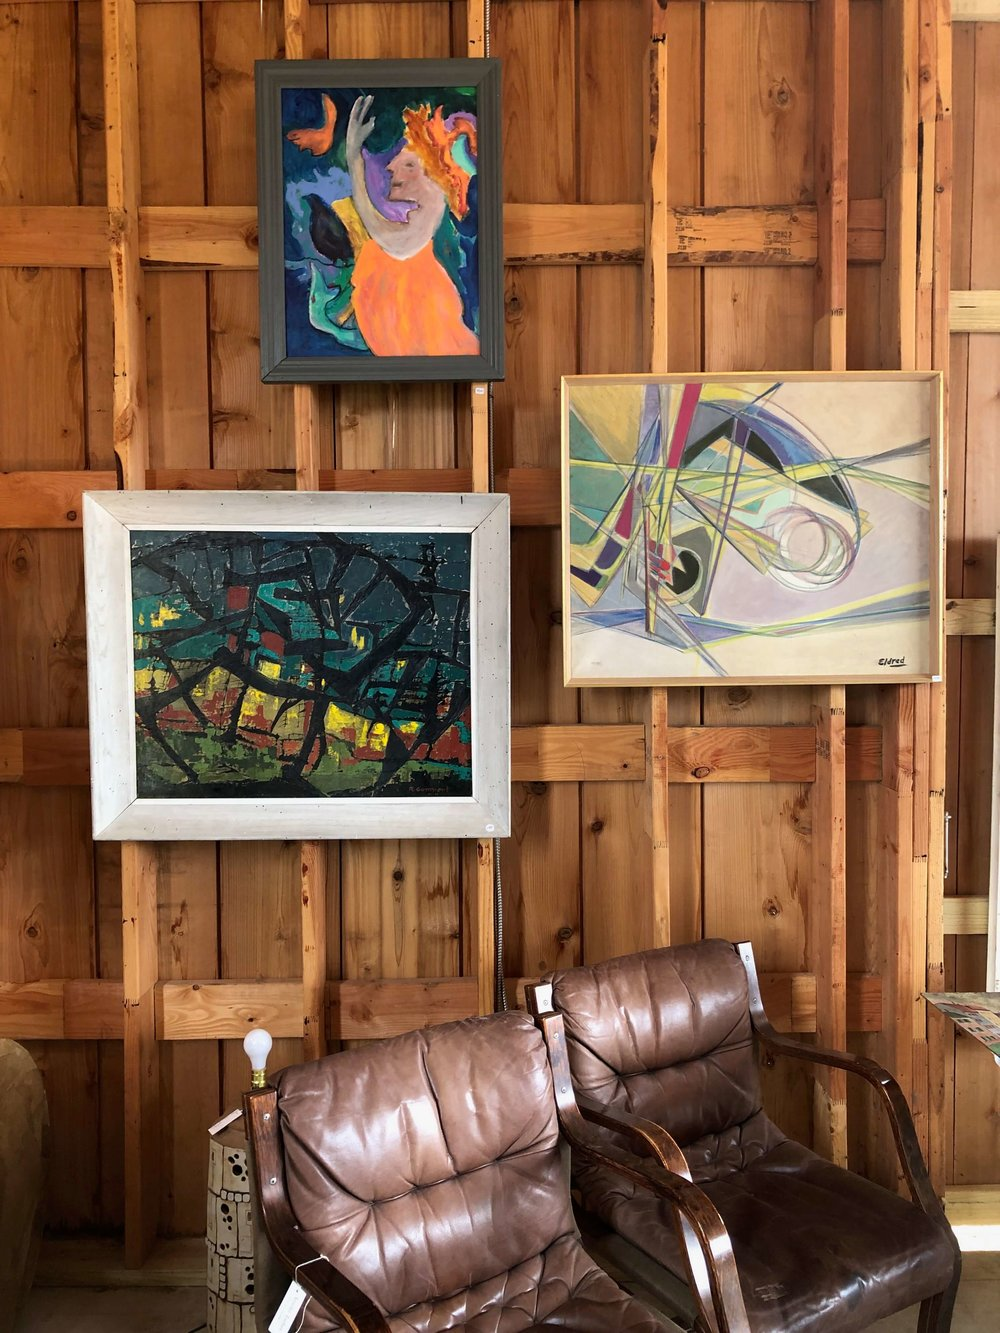 Loving this art grouping. I'll take it all! Art and vintage furniture seen at The Compound, Round Top Antiques Fair